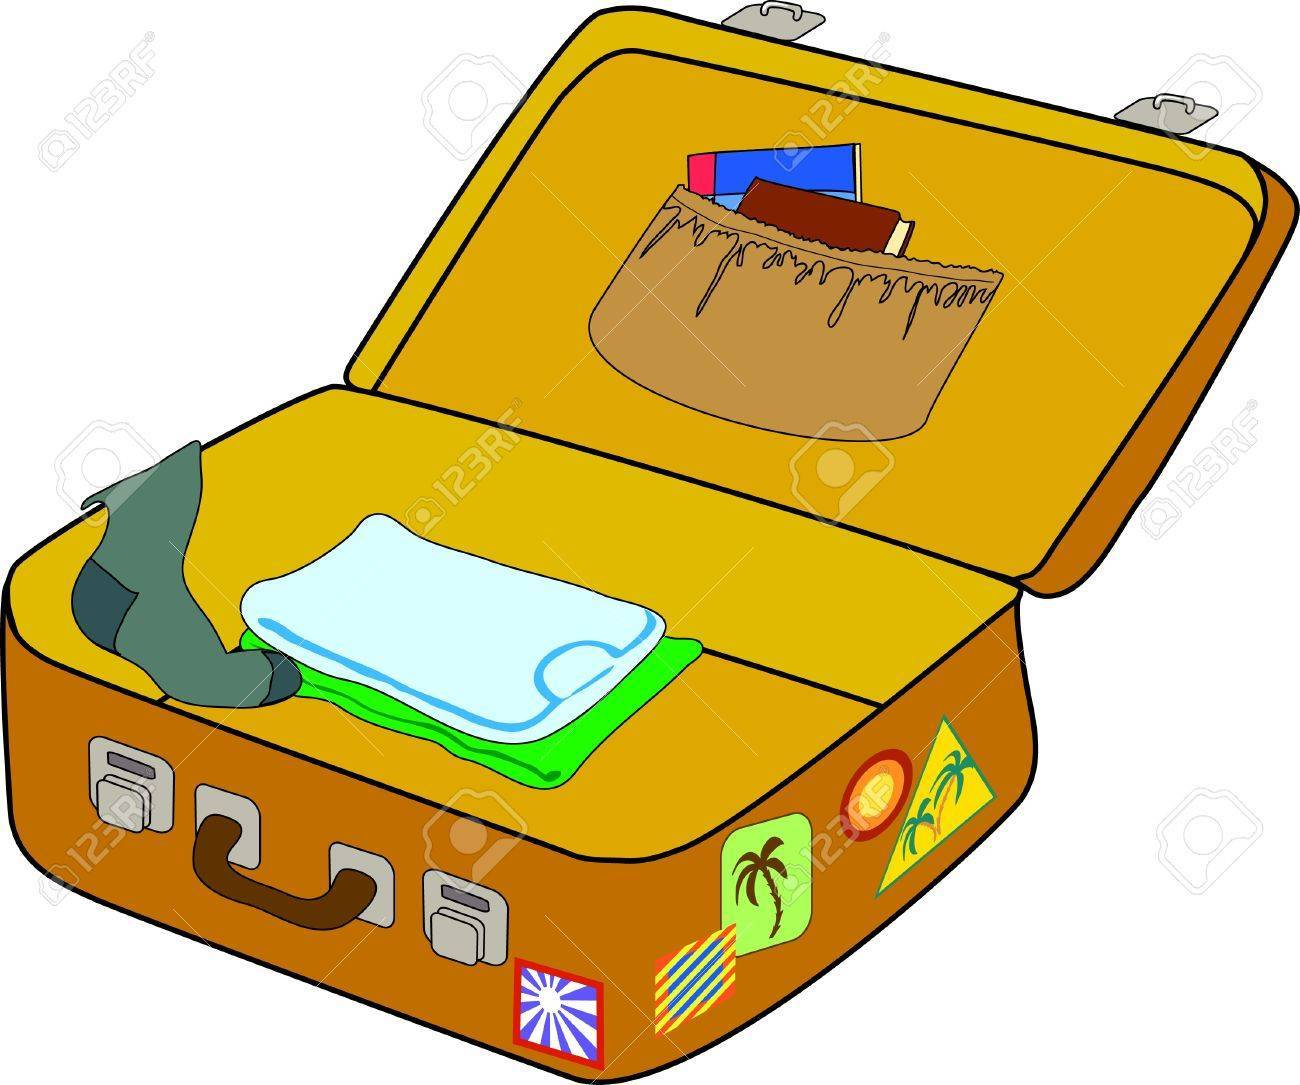 Pack a suitcase clipart transparent library Packing suitcase clipart 9 » Clipart Portal transparent library